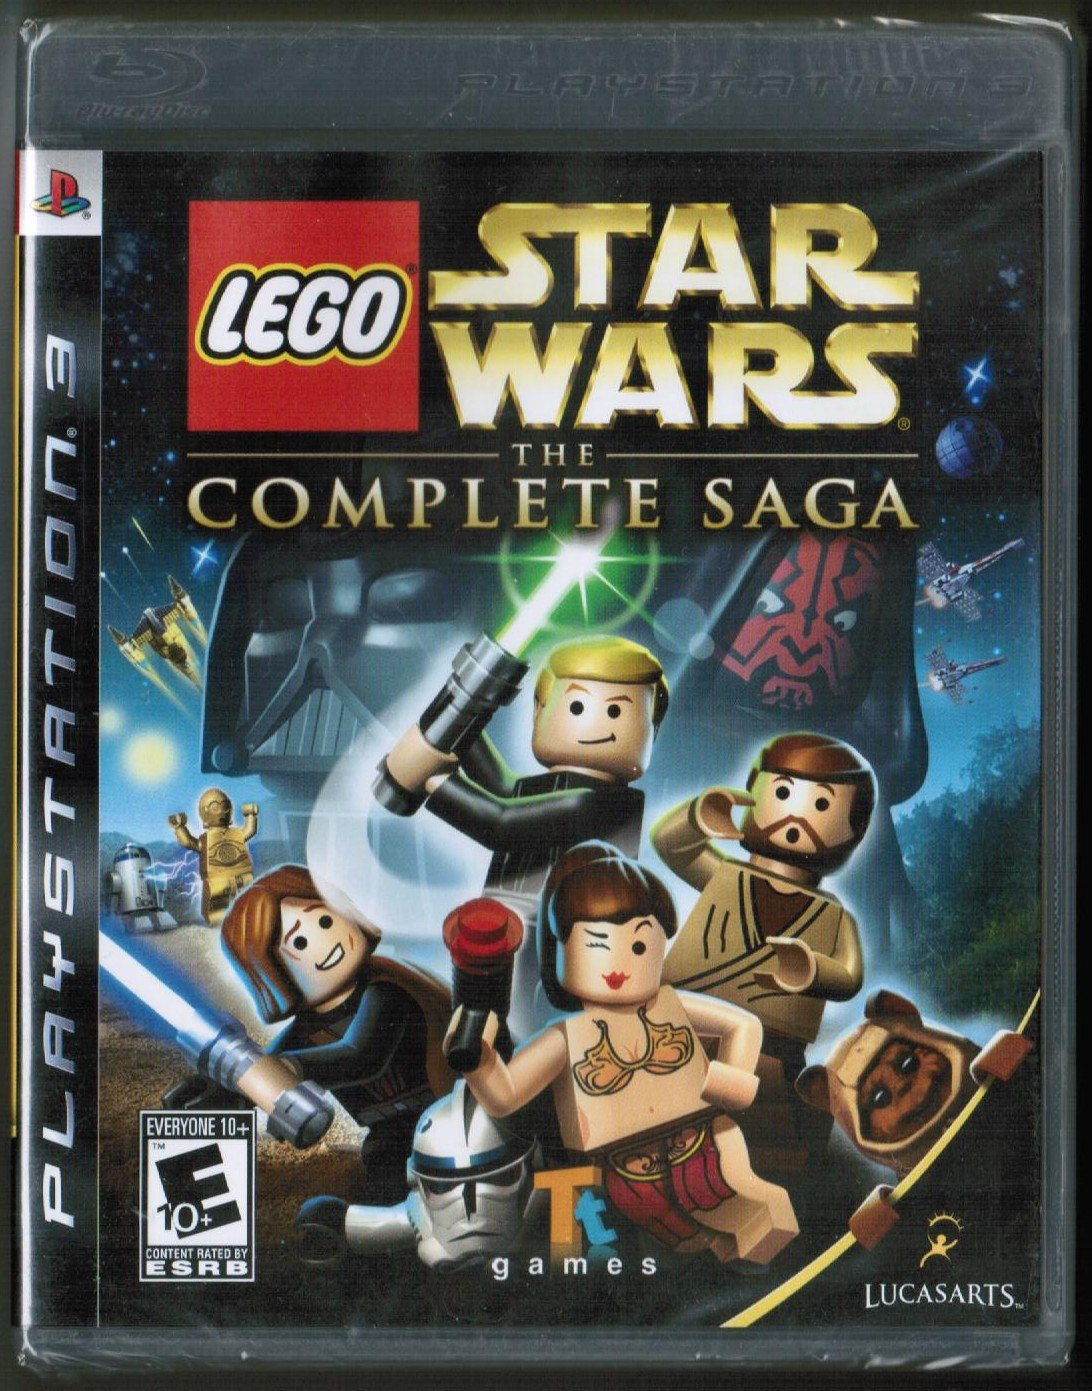 Lego Star Wars: The Complete Saga -  PlayStation 3 PS3 (2007)